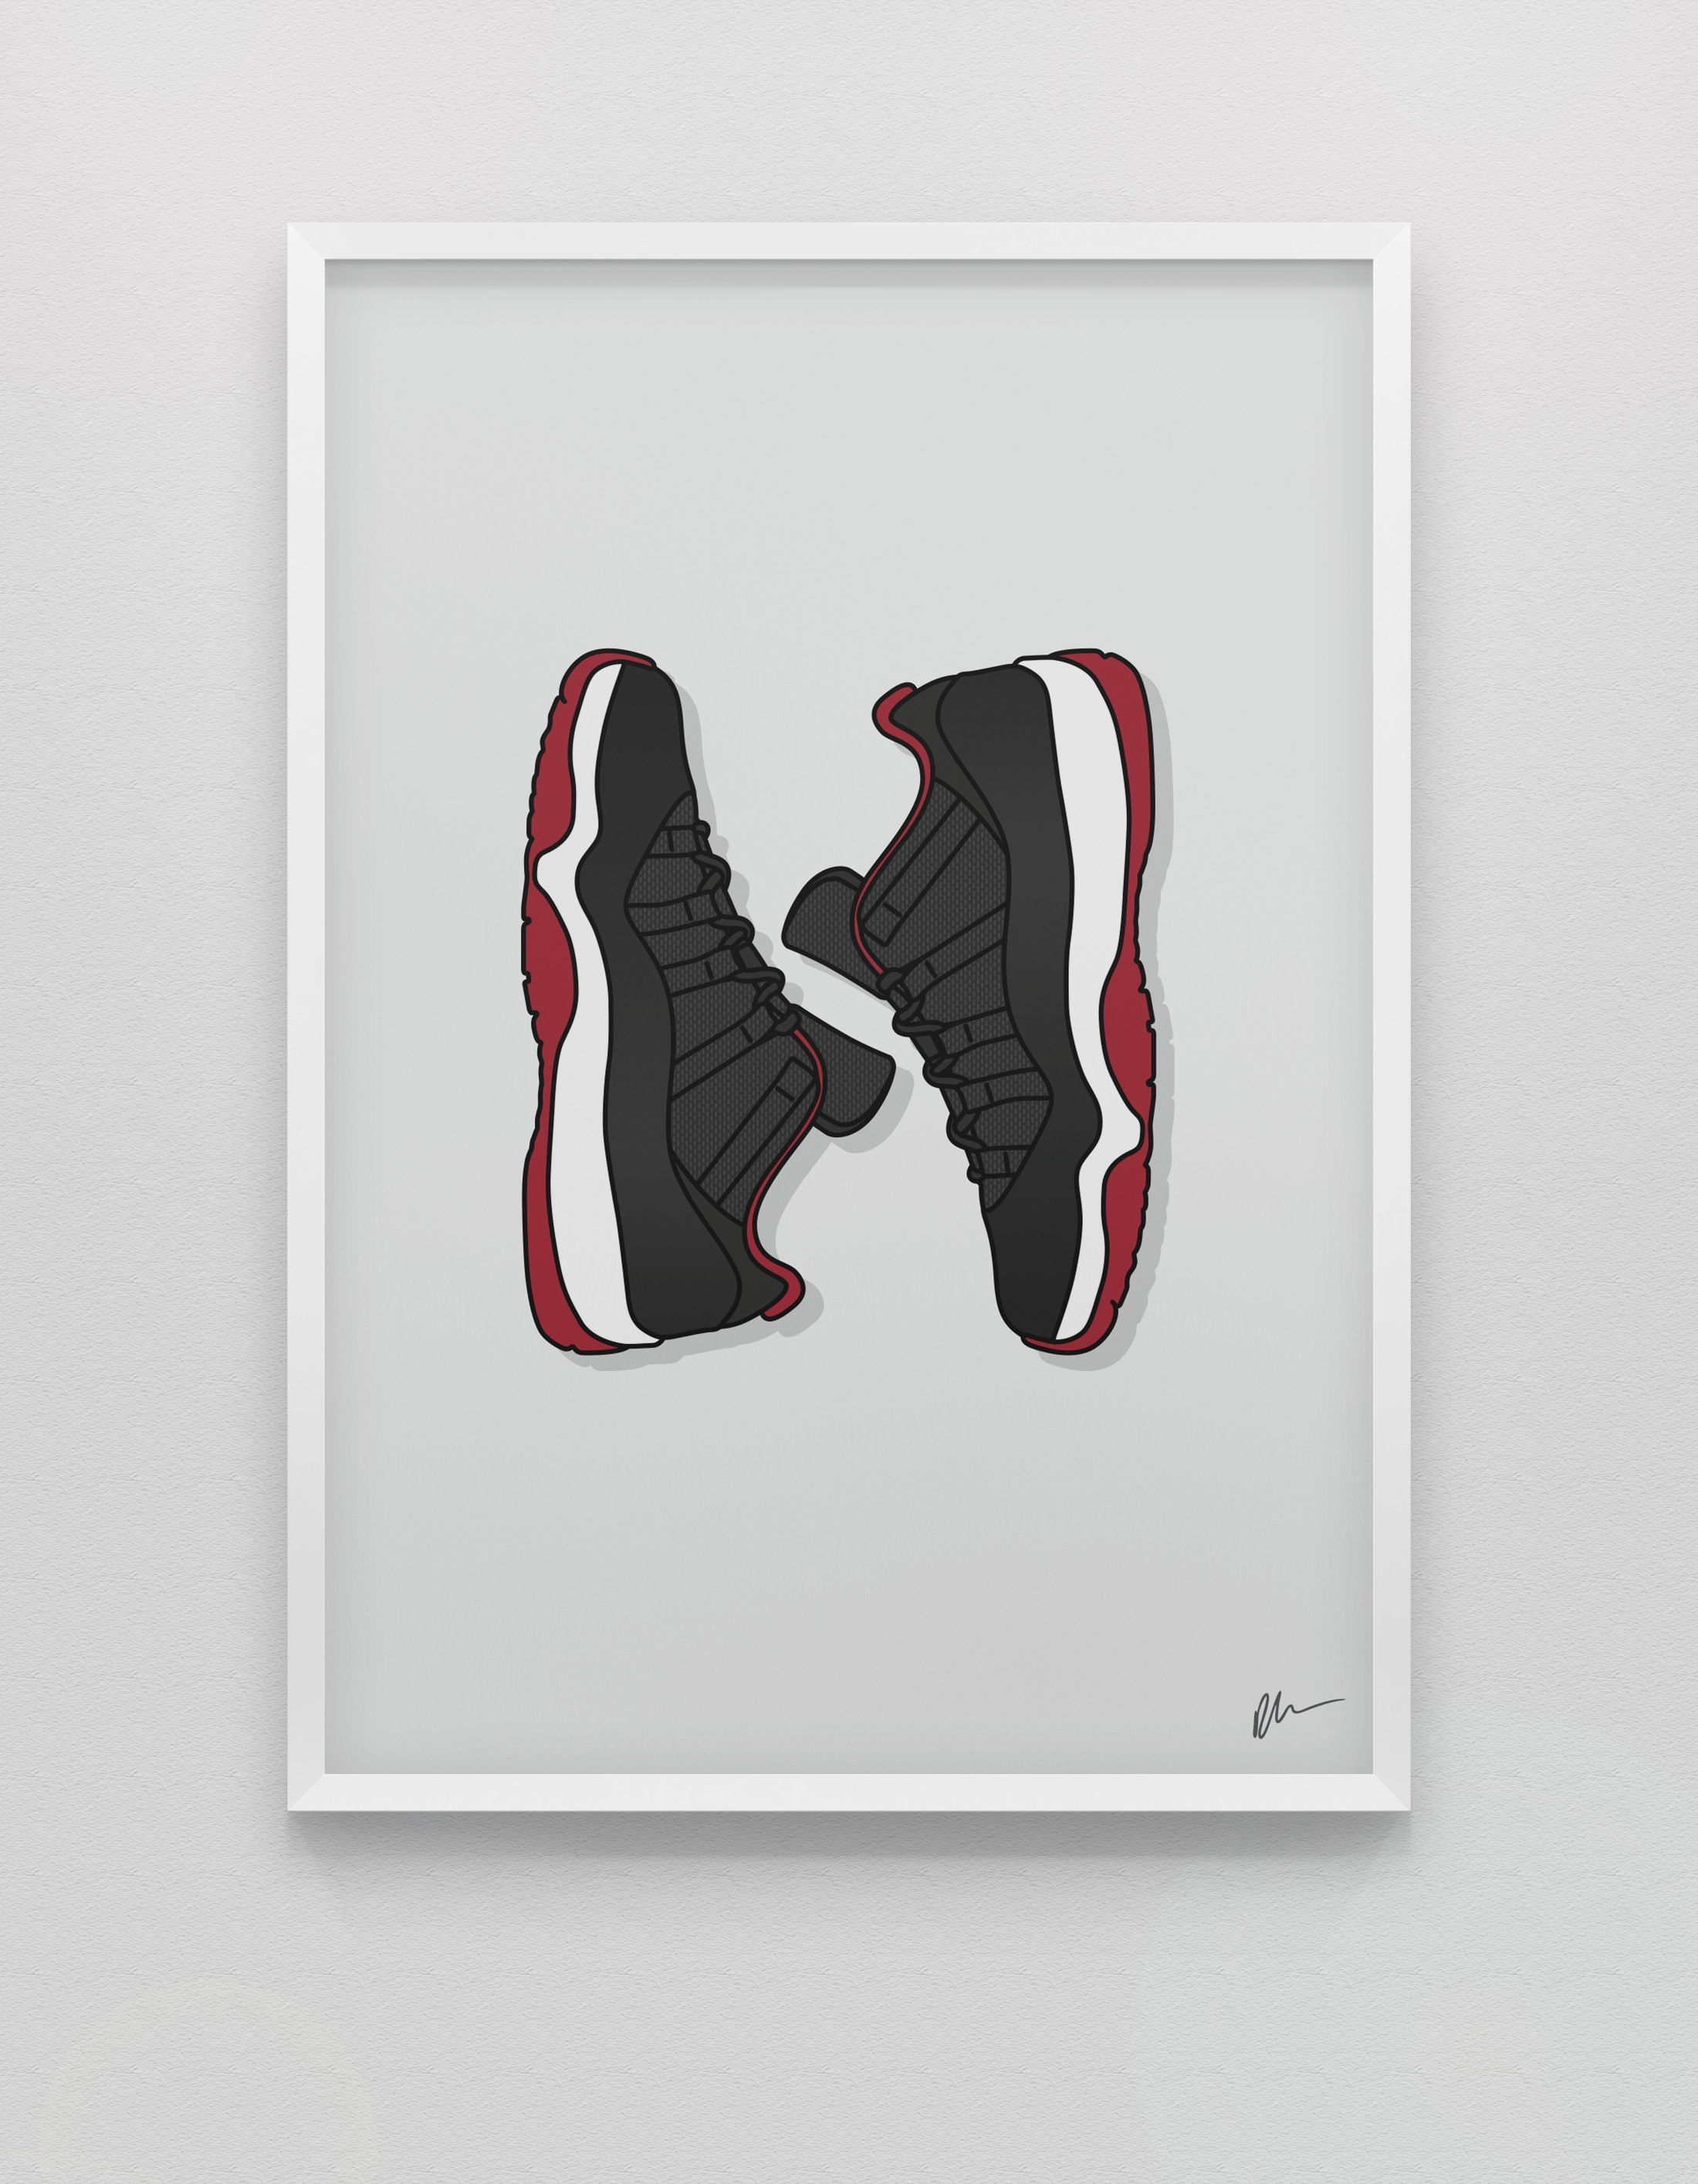 New Jordan 11 Low Bred Cute Patterns Wallpaper Hypebeast Wallpaper Sneaker Posters